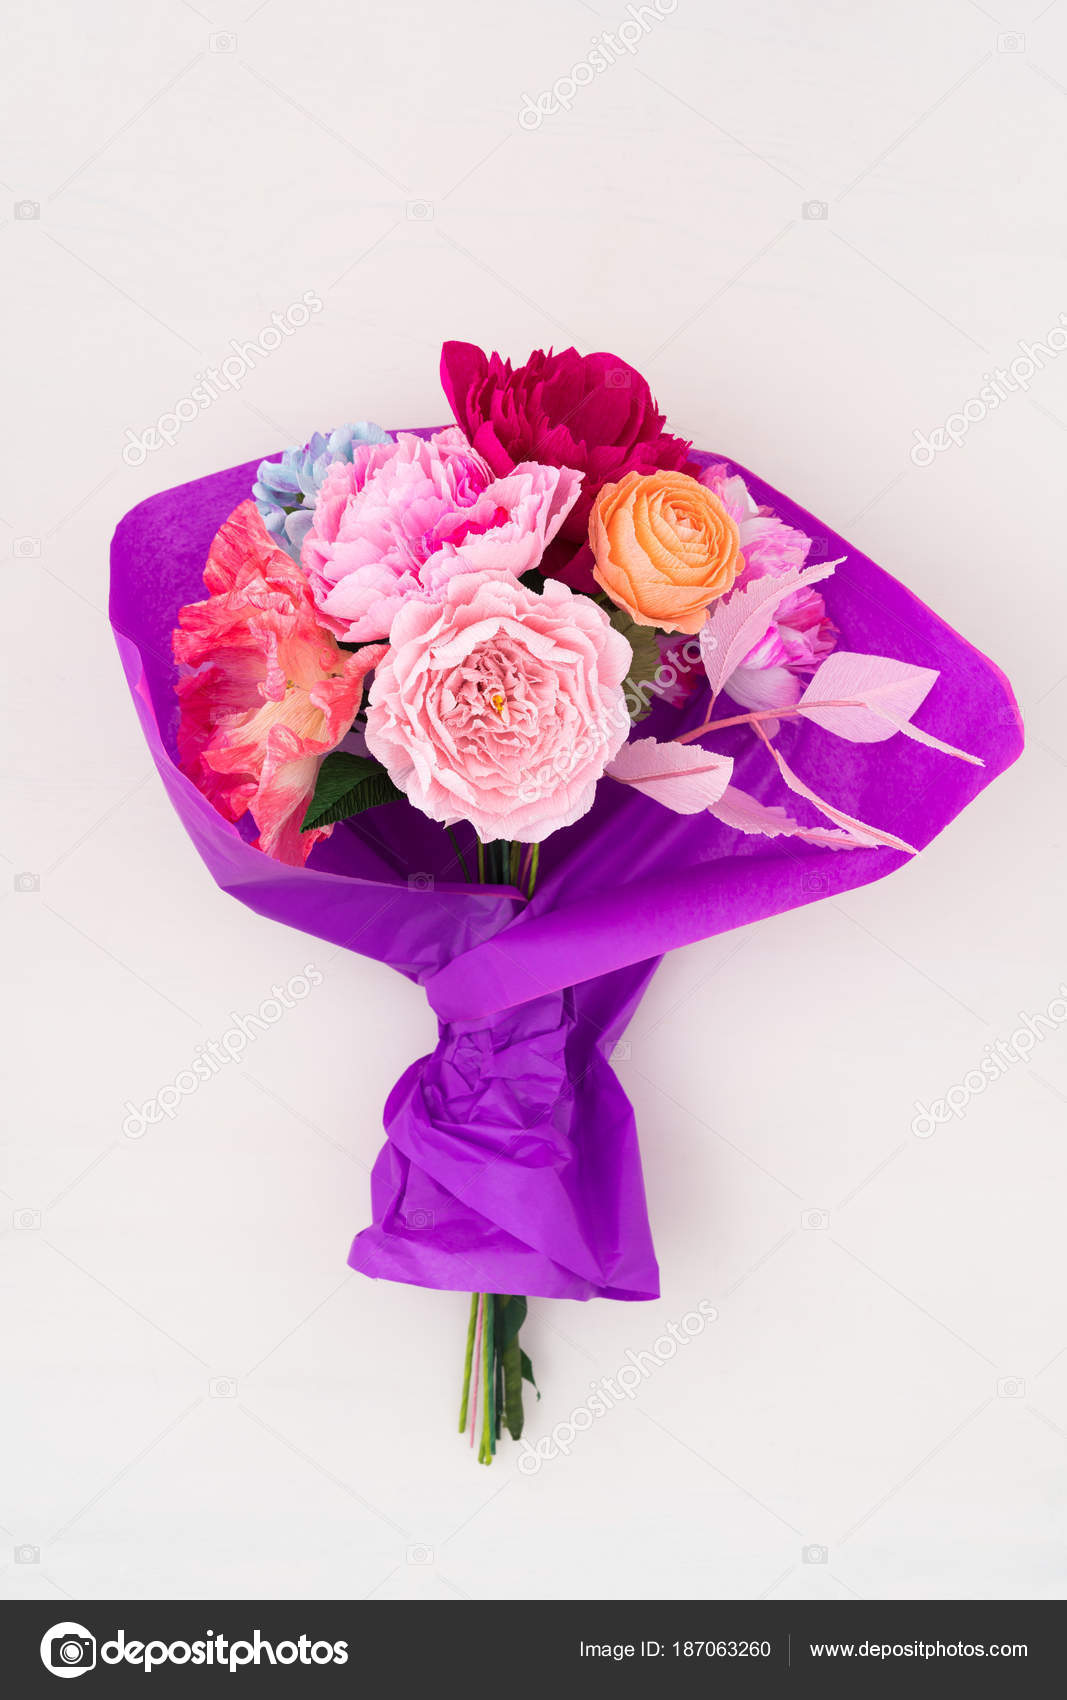 Crepe paper flower bouquet stock photo ecoelfen 187063260 crepe paper flower bouquet with peonies sweet peas poppies ranunculus roses and dahlia wrapped in tissue paper photo by ecoelfen izmirmasajfo